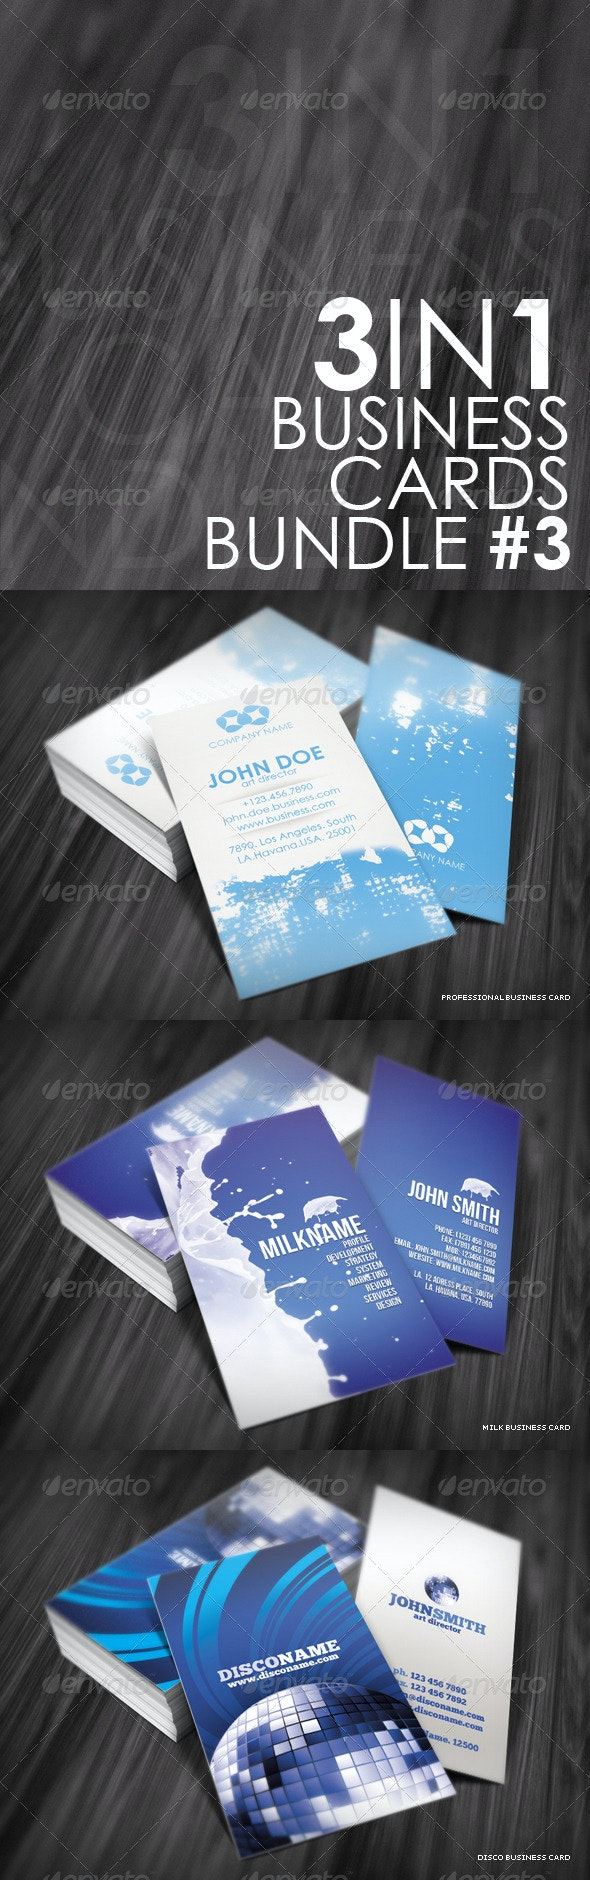 3in1 Business Cards Bundle #3 - Creative Business Cards